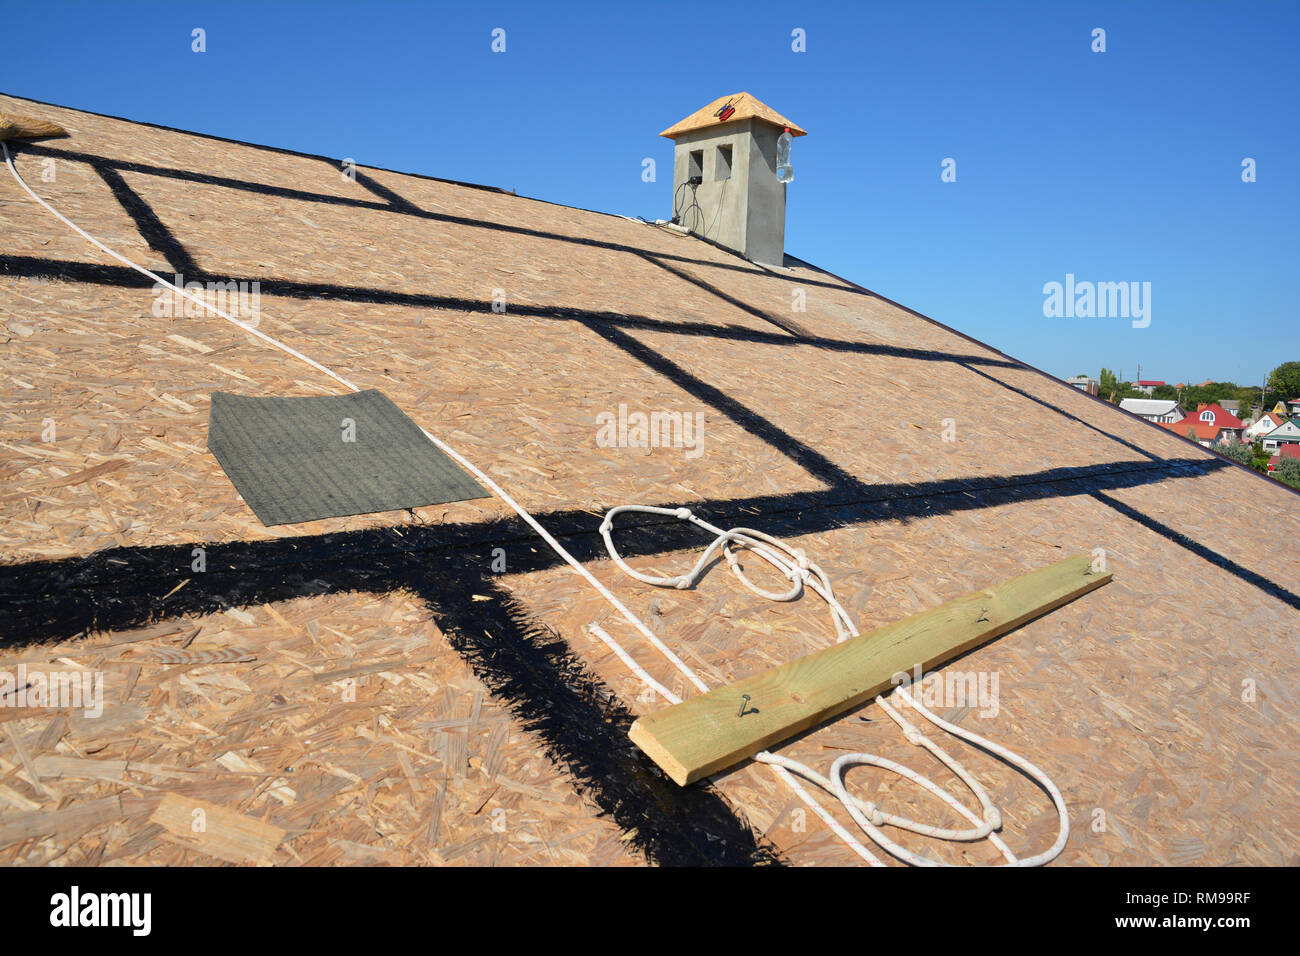 Roofing preparation asphalt shingles installing on house construction wooden roof with bitumen spray and  protection rope, safety kit. Roofing constru - Stock Image